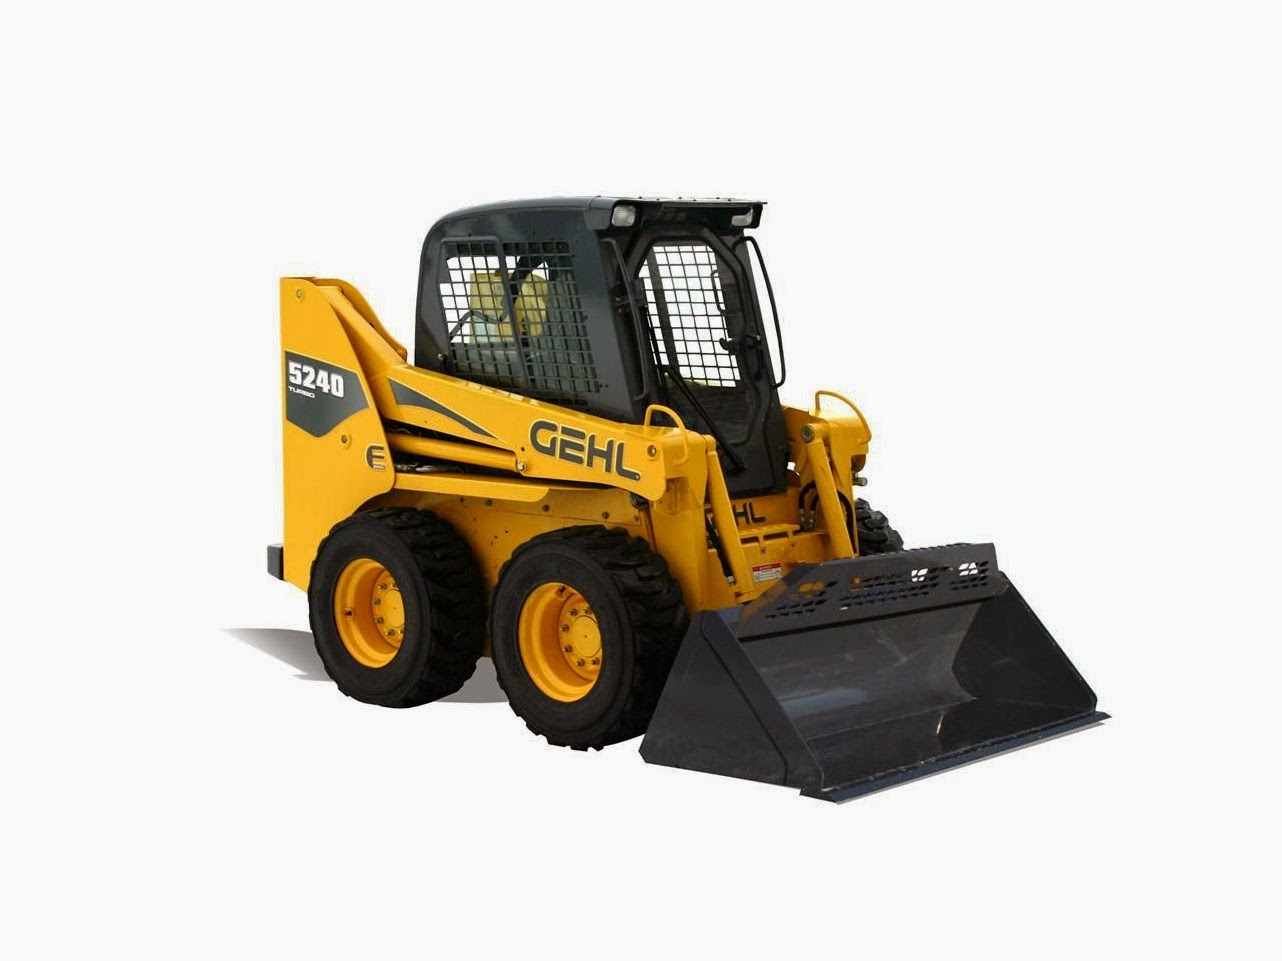 Consumer Savvy Reviews: 3 Top-of-the-Line Skid Steer Loaders from Gehl